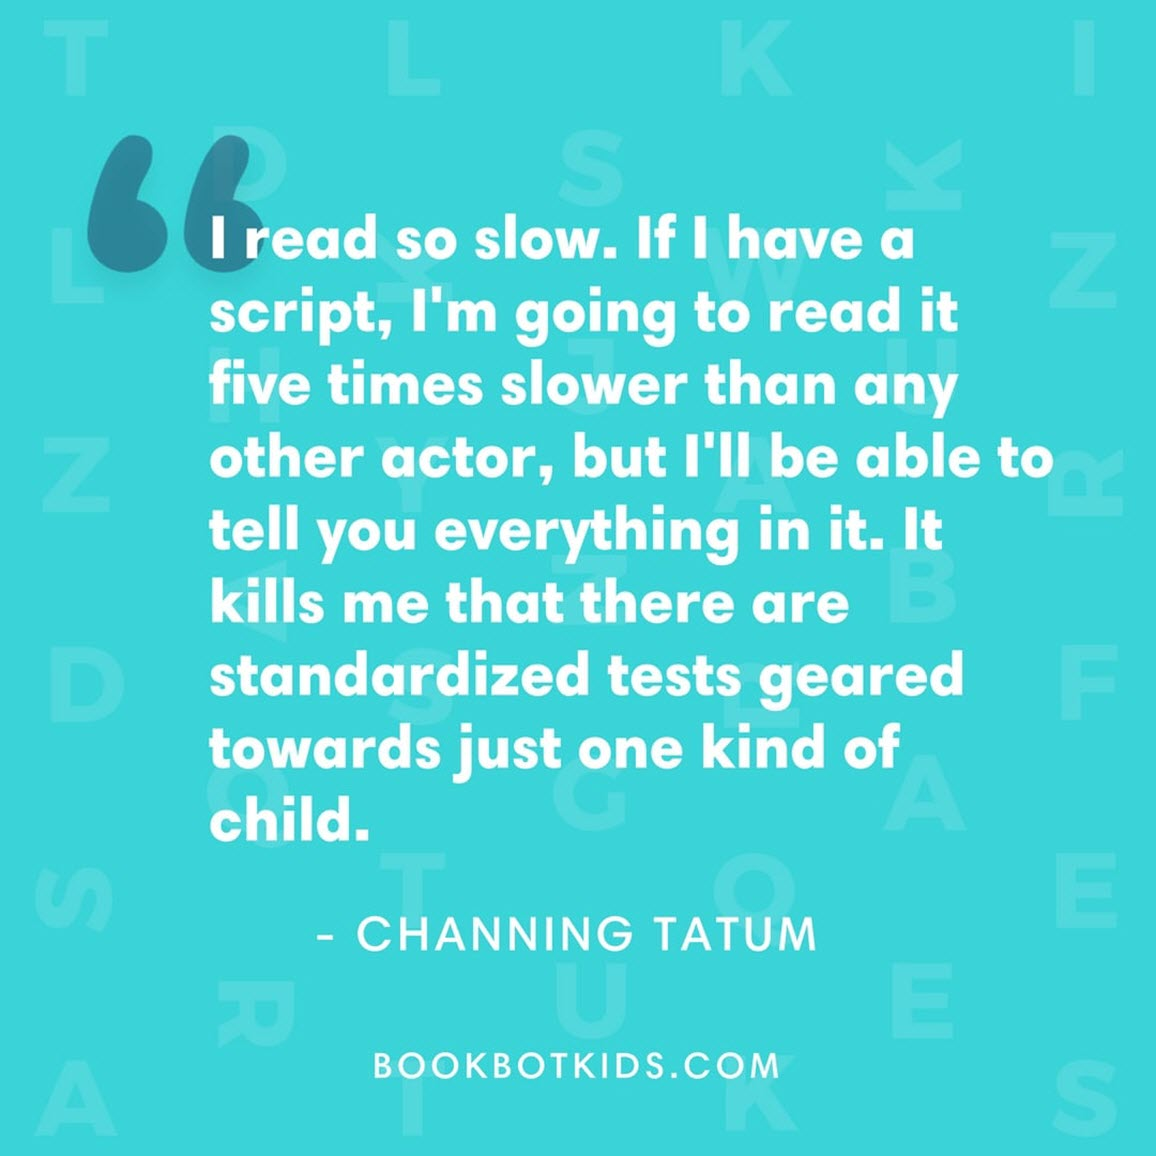 I read so slow. If I have a script, I'm going to read it five times slower than any other actor, but I'll be able to tell you everything in it. It kills me that there are standardized tests geared towards just one kind of child. – Channing Tatum